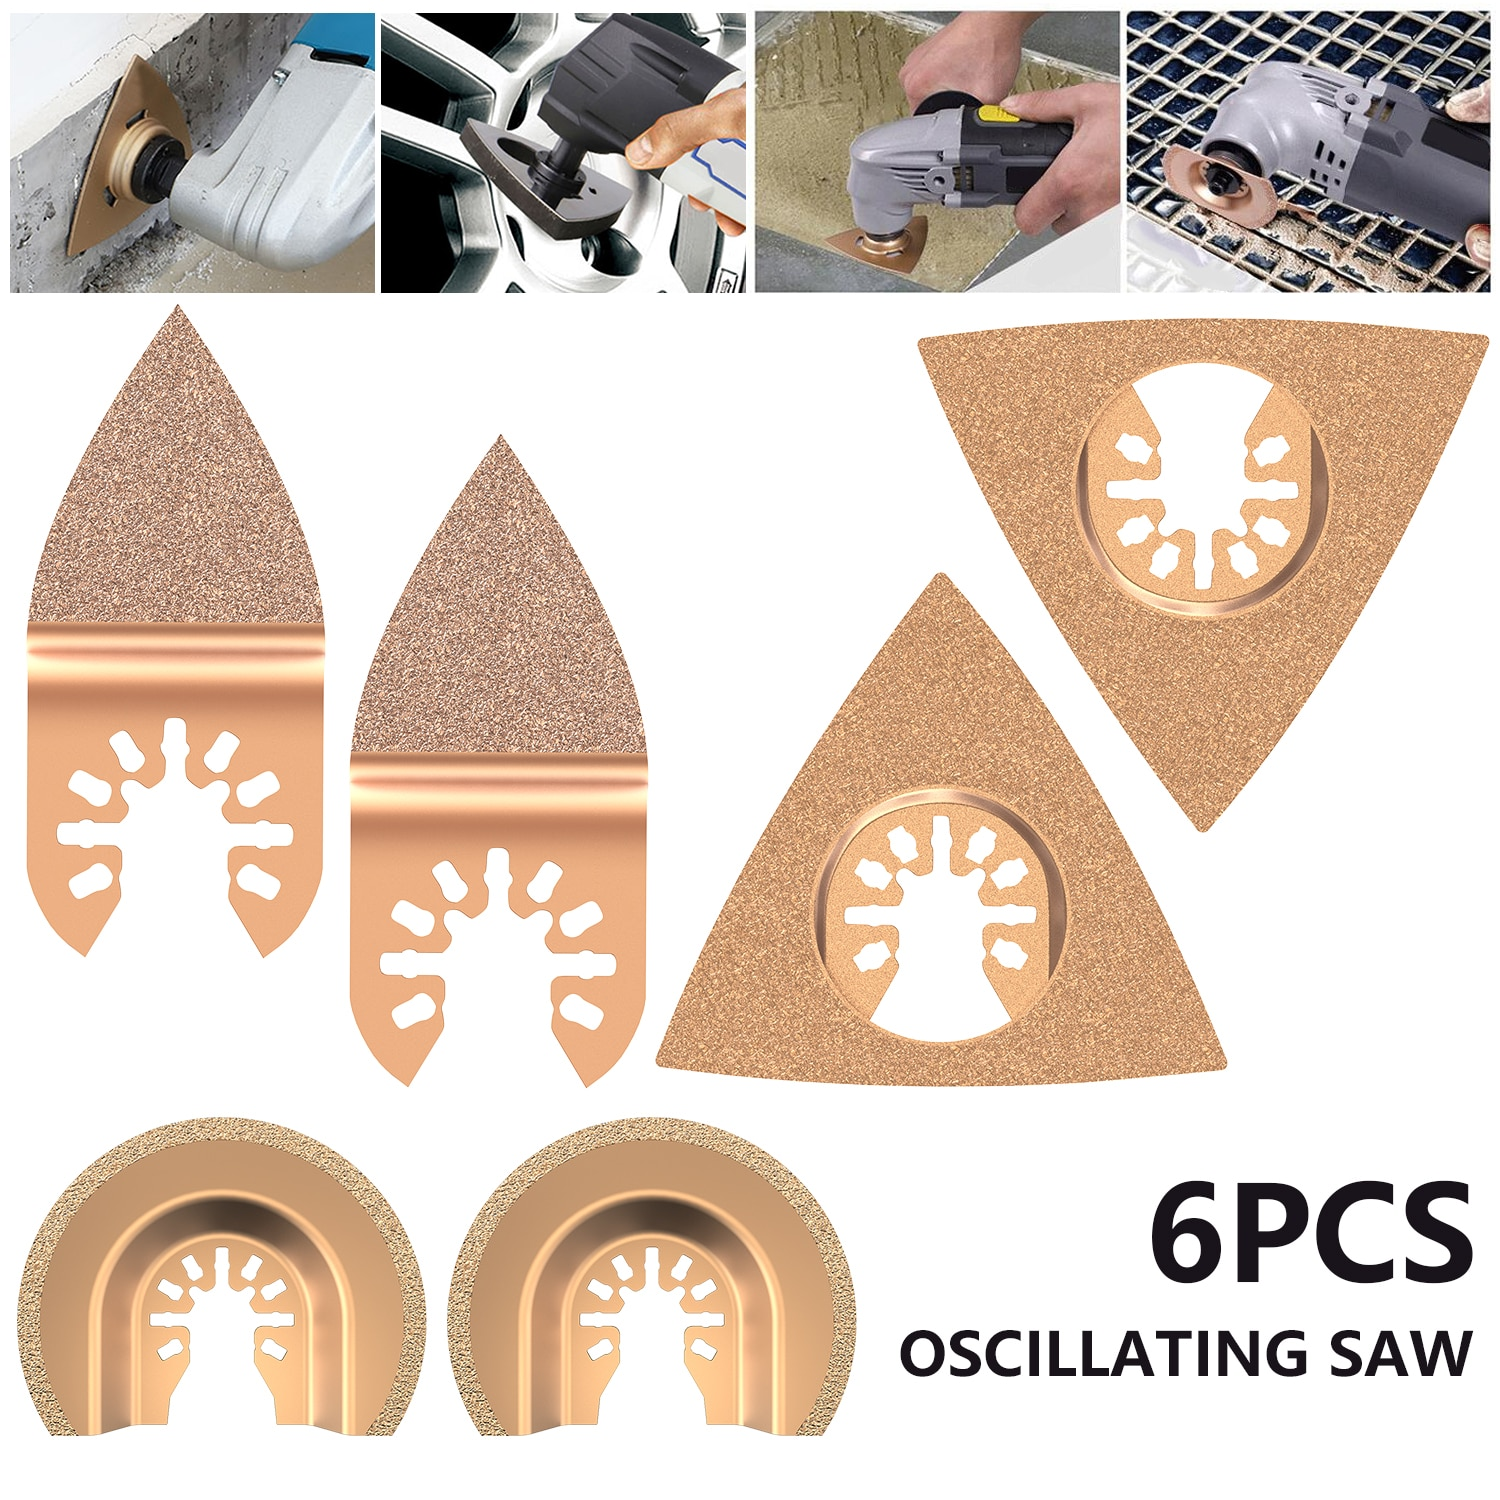 5/6/8pcs Oscillating Multi Tool Saw Blades for Renovator Power Tools As Fein Multimaster Dremel Electric Tools Accessories